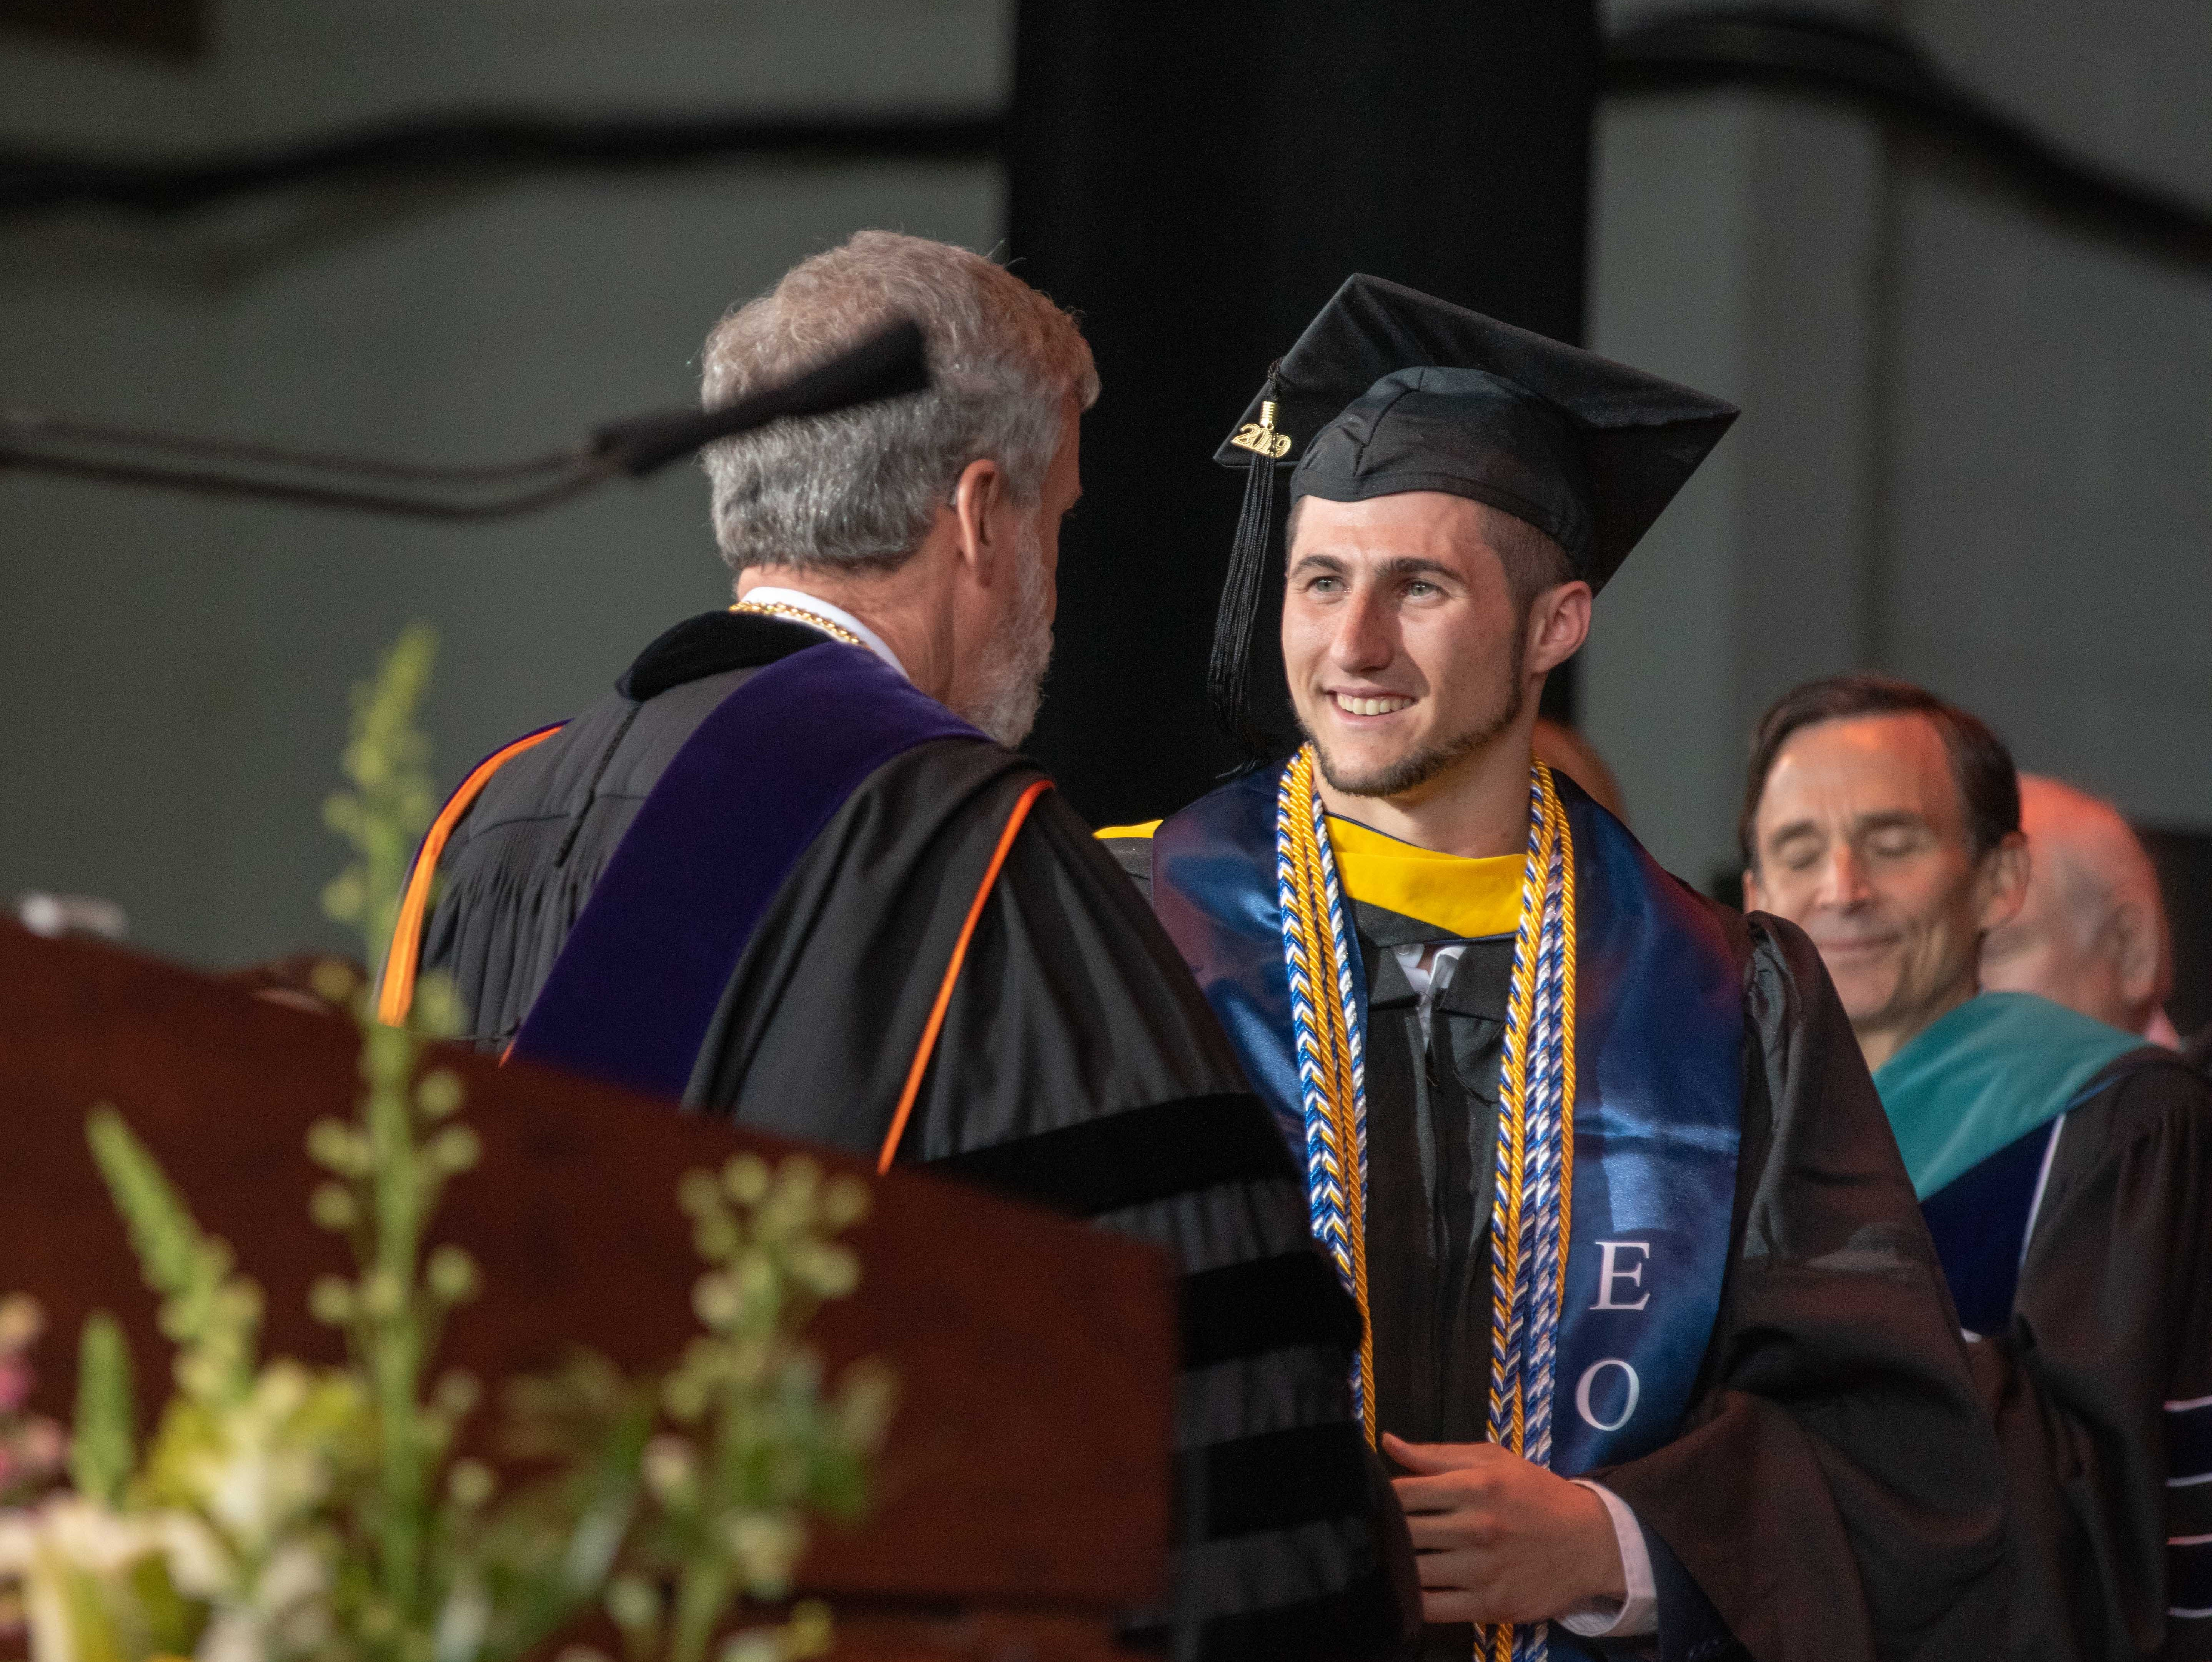 Outgoing Monmouth University president  Grey J. Dimenna introduces Nicholas A. Plodwick, class president, at the Monmouth University undergraduate commencement for the class of 2019 at PNC Bank Arts Center, Holmdel, on May 15, 2019.